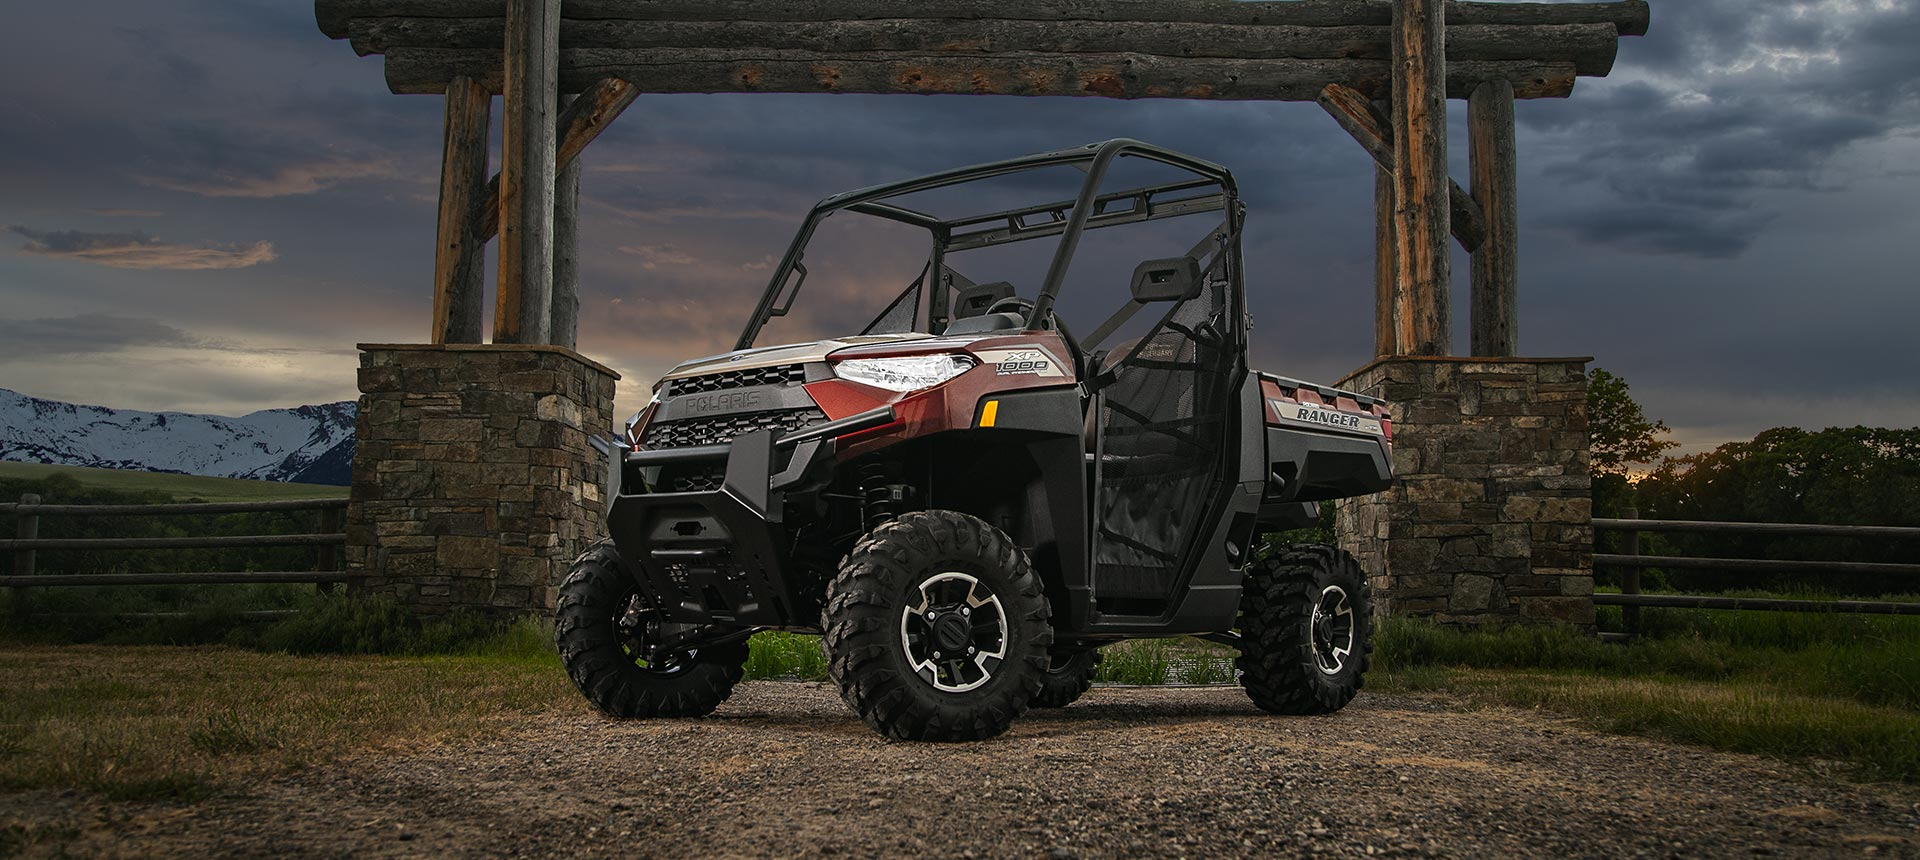 2019 Polaris Ranger XP 1000 EPS in Yuba City, California - Photo 8